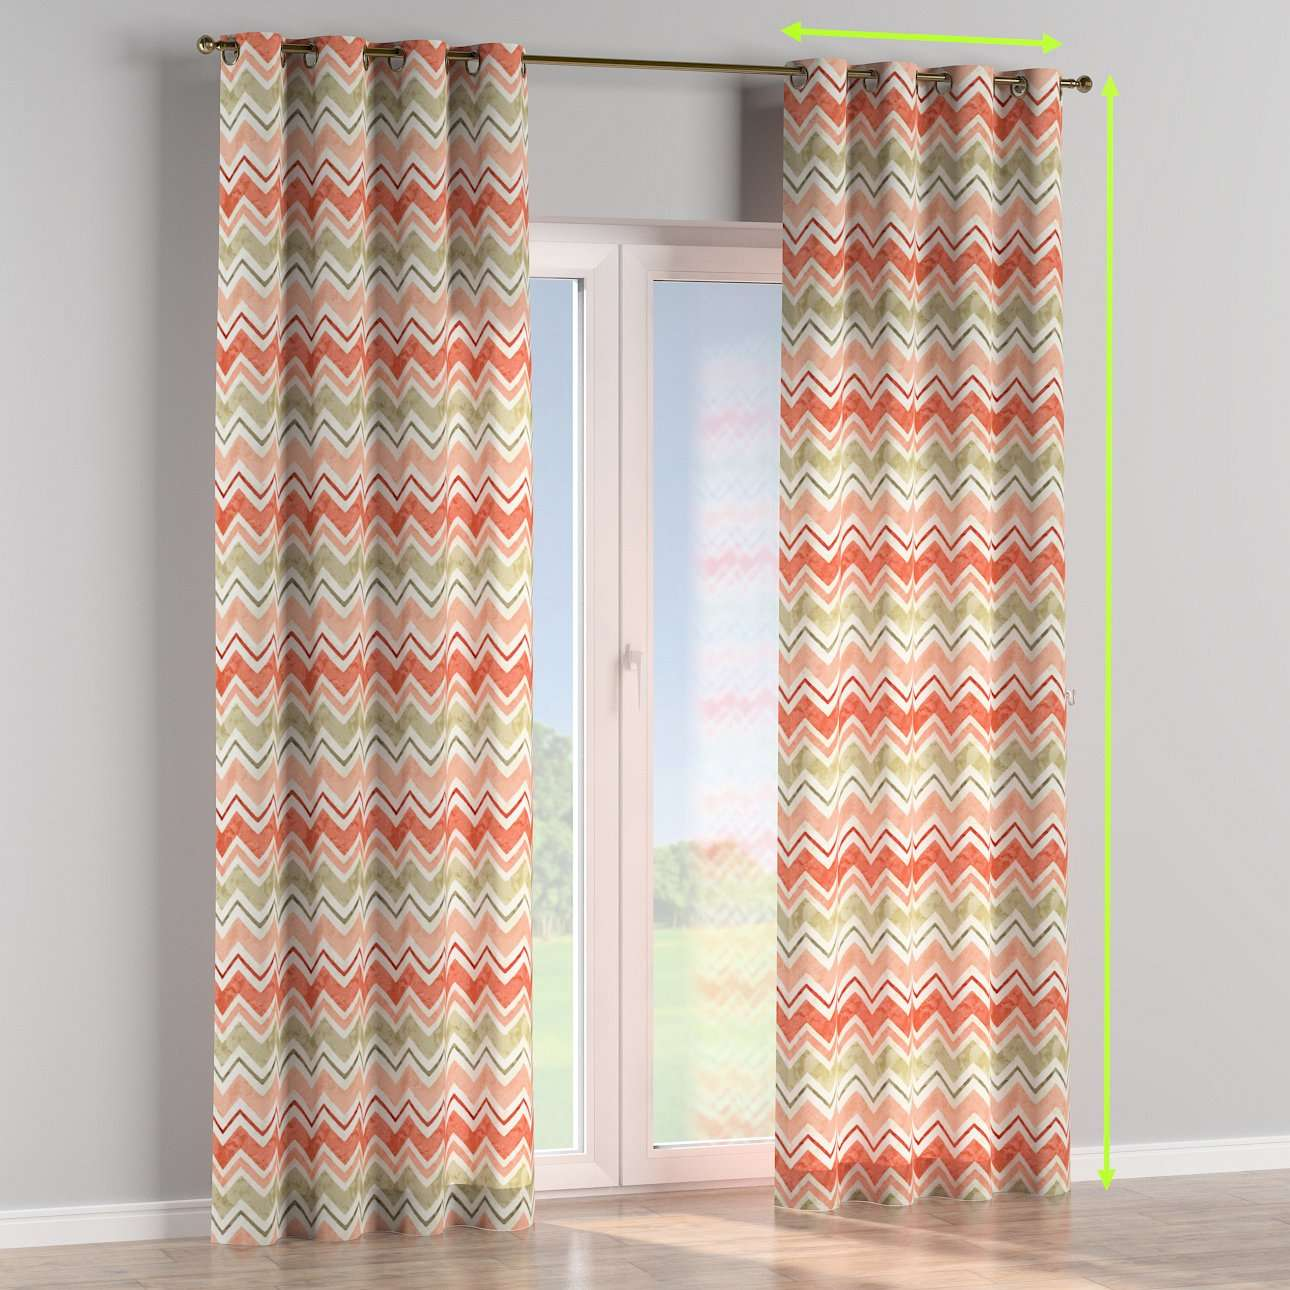 Eyelet lined curtains in collection Acapulco, fabric: 141-40